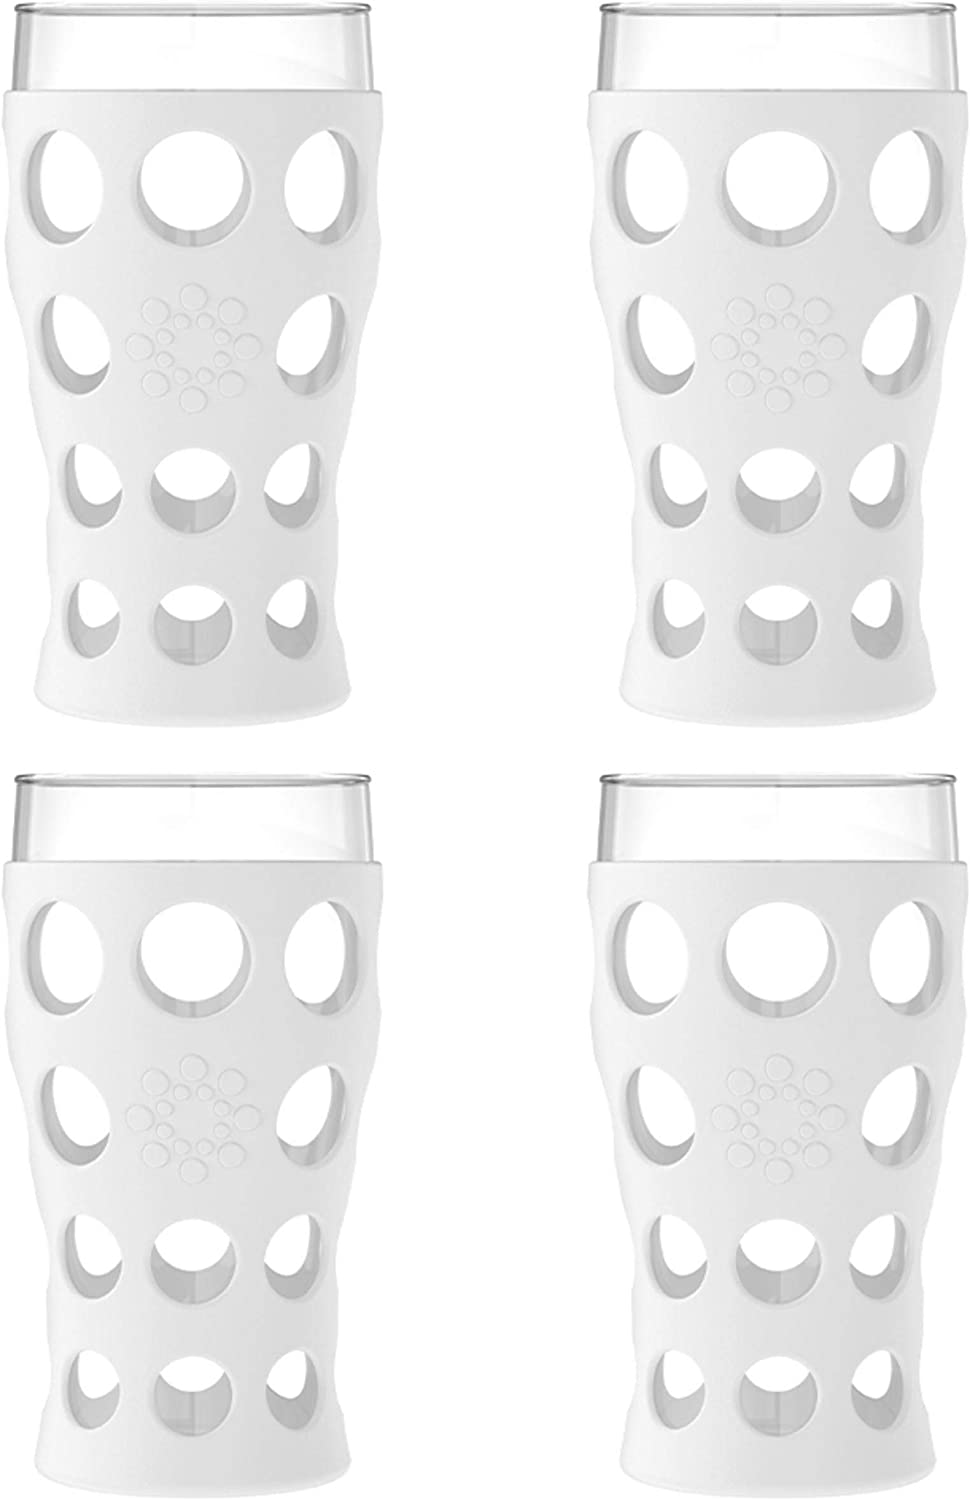 Lifefactory 20-Ounce BPA-Free Indoor/Outdoor Protective Silicone Sleeve Beverage Glass, 4-Pack, Optic White